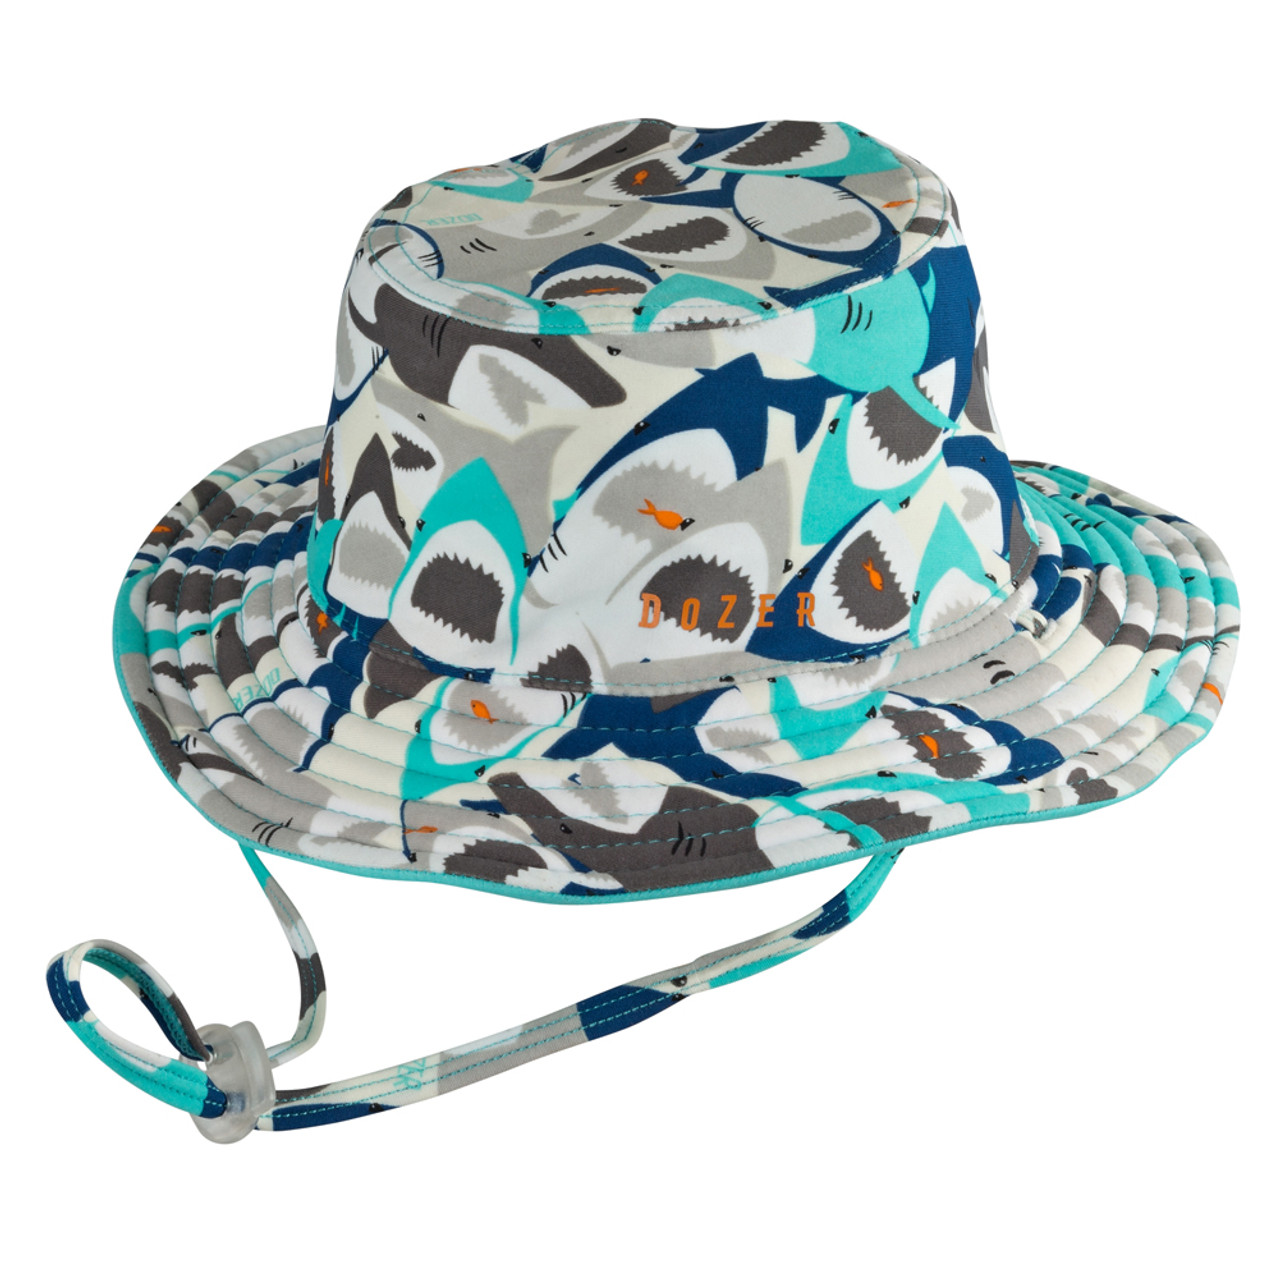 Dozer Baby Boys Bucket Hat - Chomp (LG) - Dear-Born Baby 861d8c2ba9a